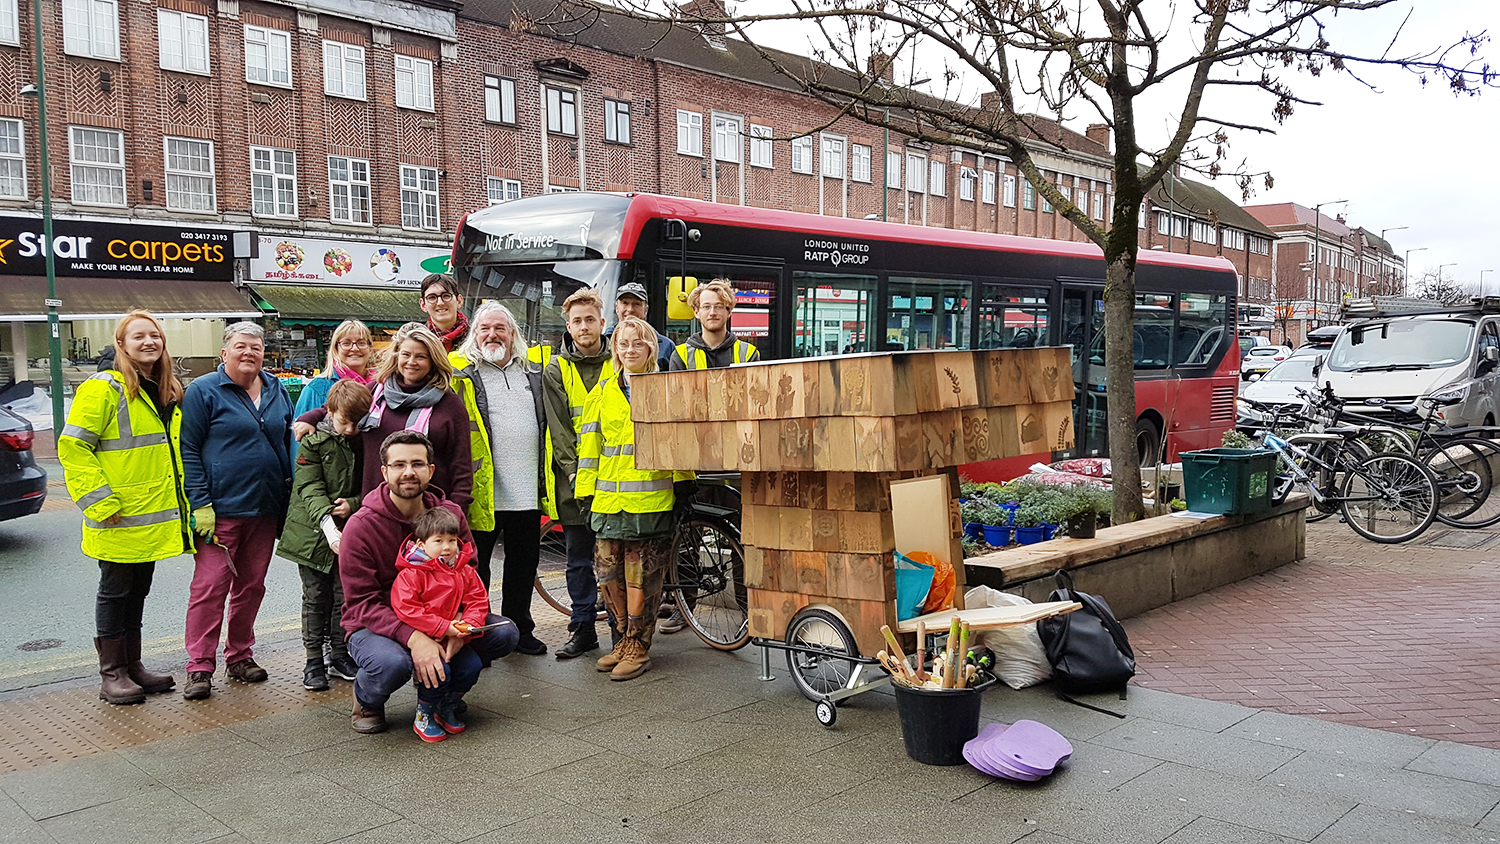 Green Shed photos by Charlotte Levy